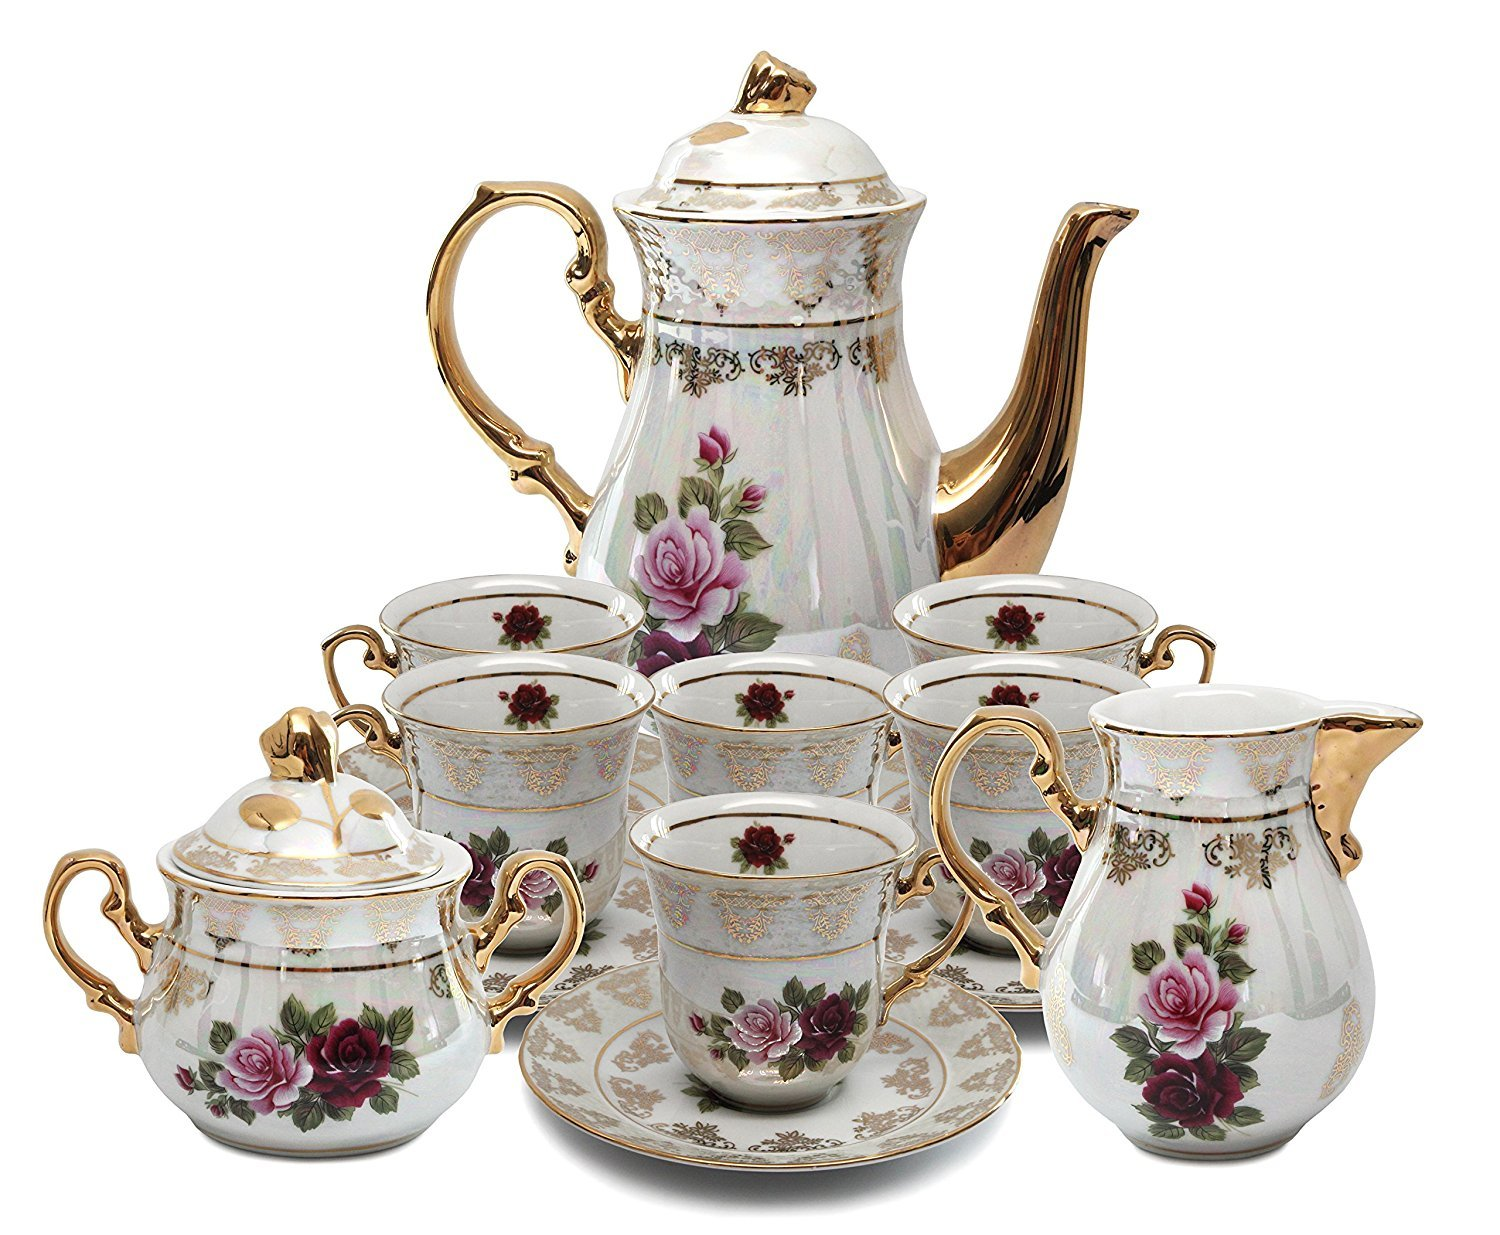 Royalty Porcelain 17pc Floral Tea Set, 24K Gold-Plated Original Cobalt Tableware, Service for 6